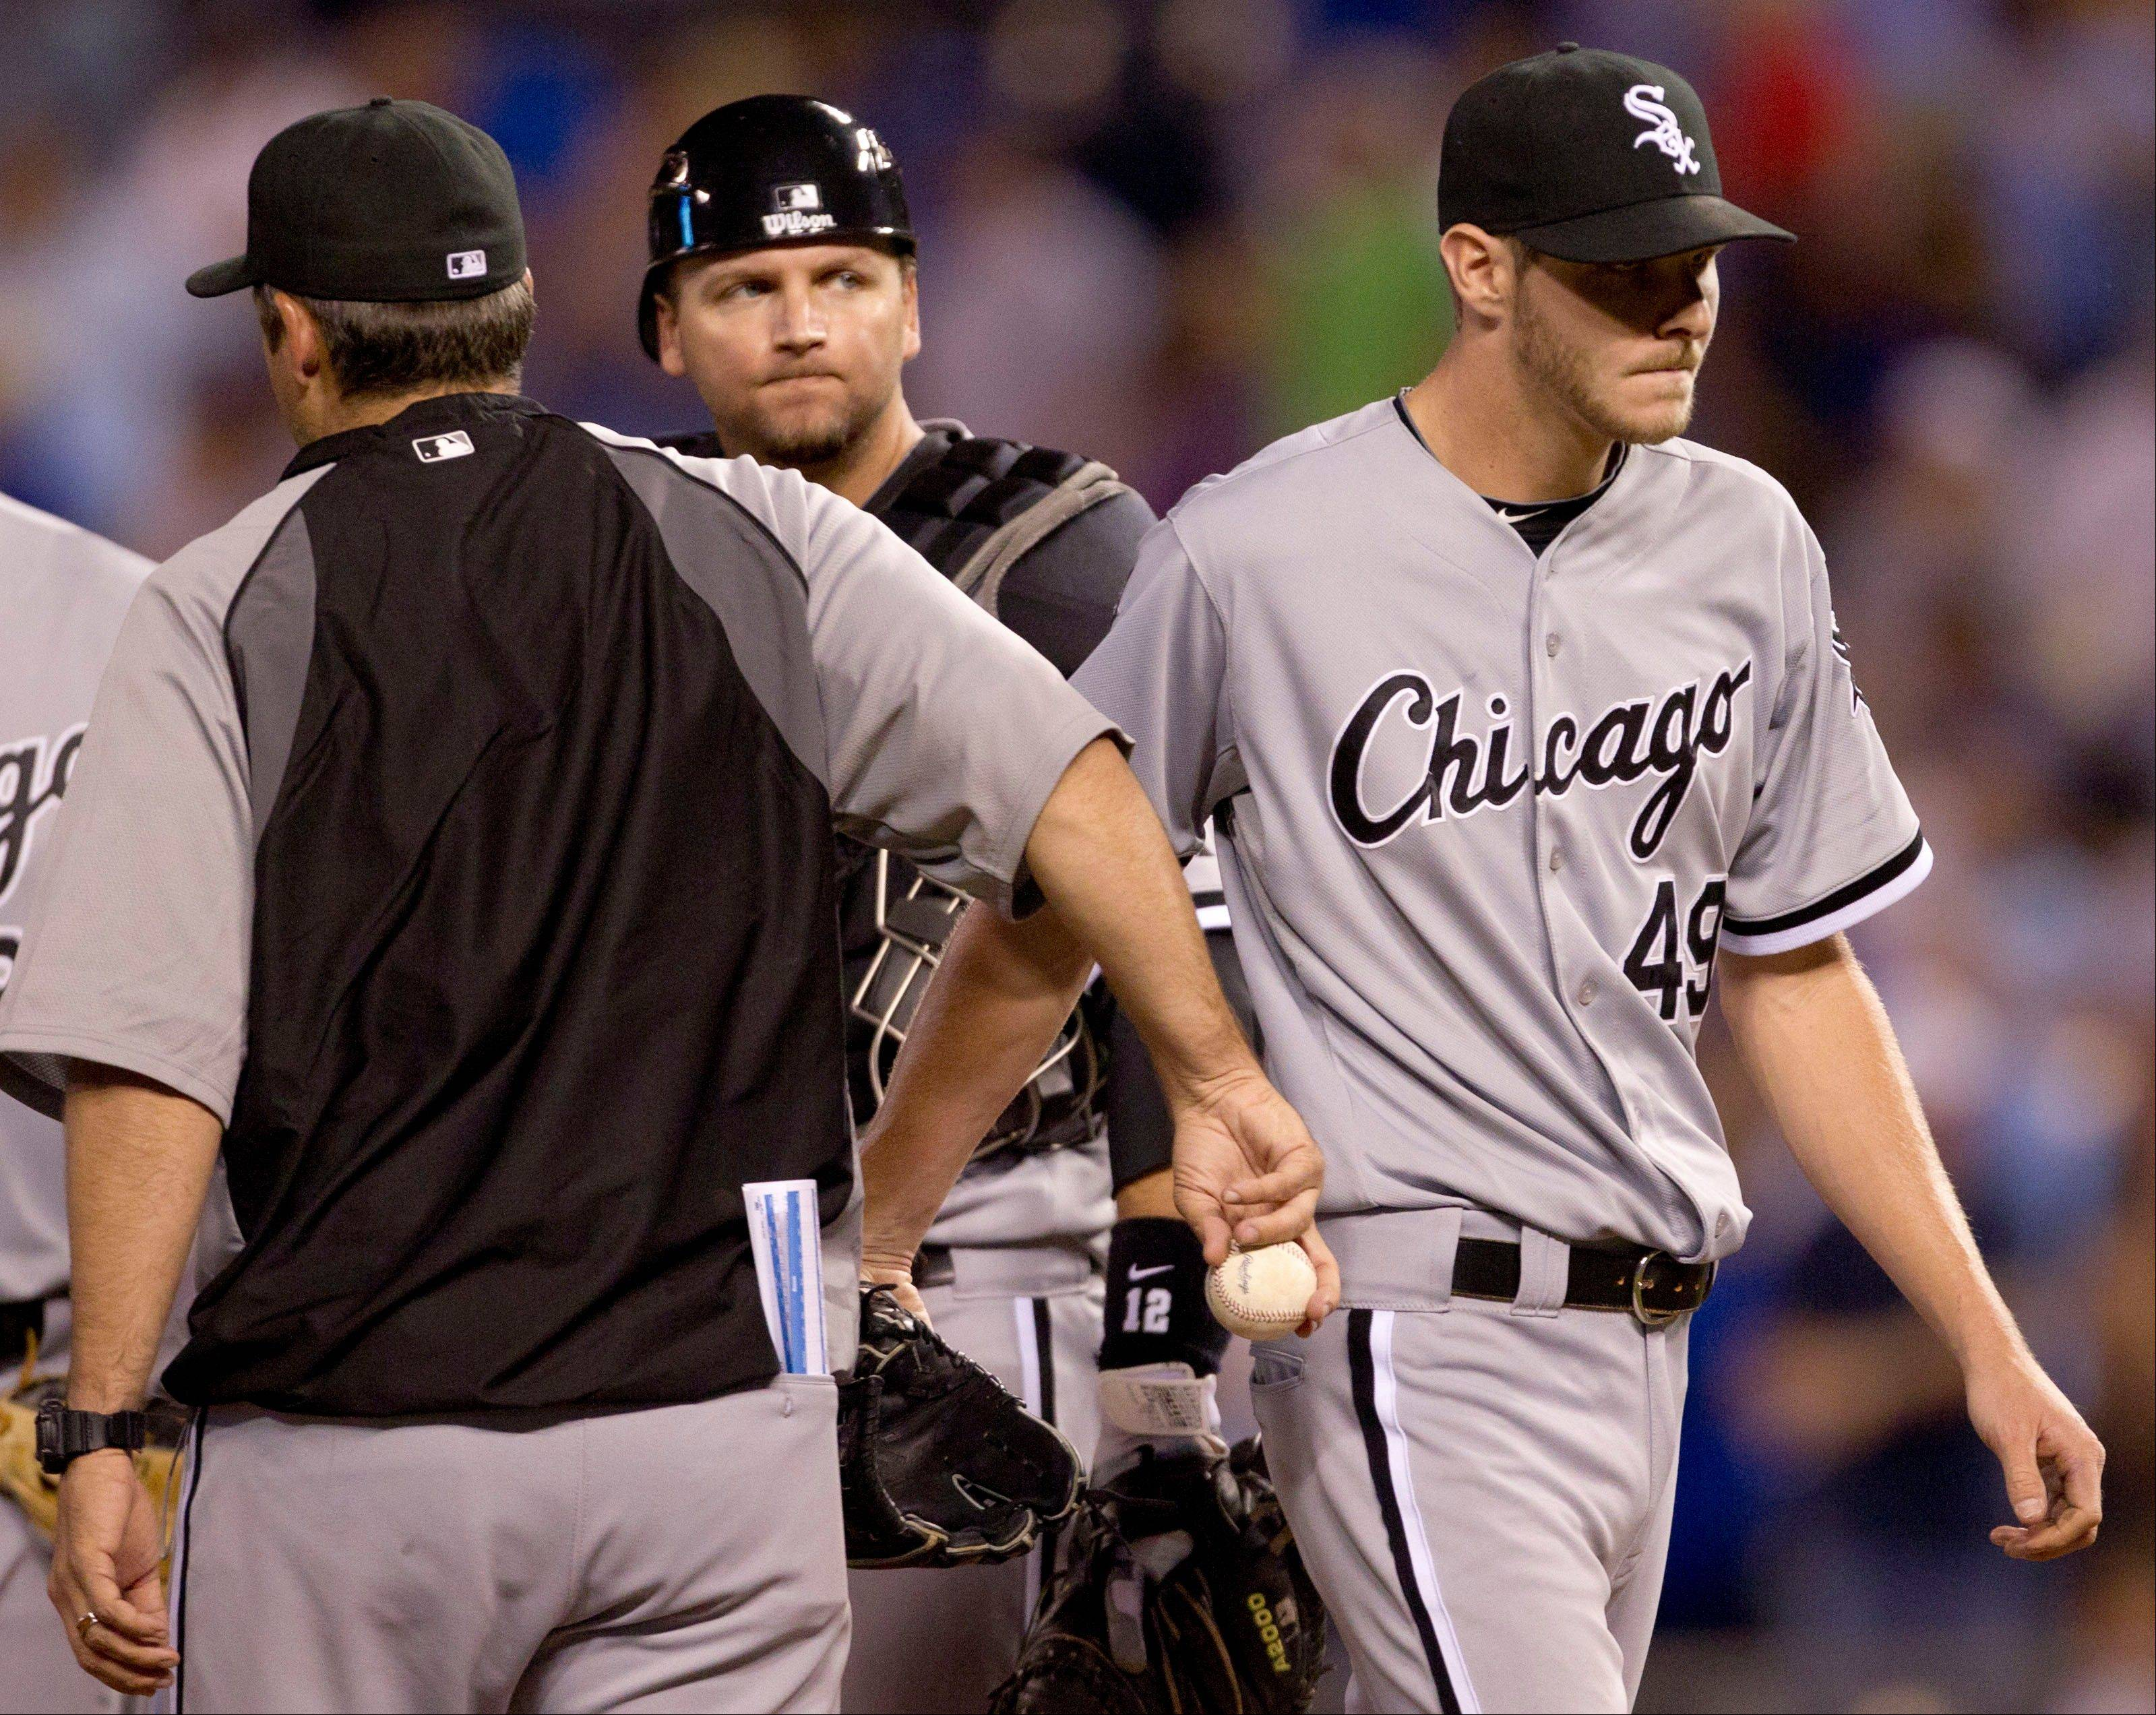 White Sox starting pitcher Chris Sale (49) is taken from the game by manager Robin Ventura during the seventh inning Friday against the Kansas City Royals at Kauffman Stadium in Kansas City,